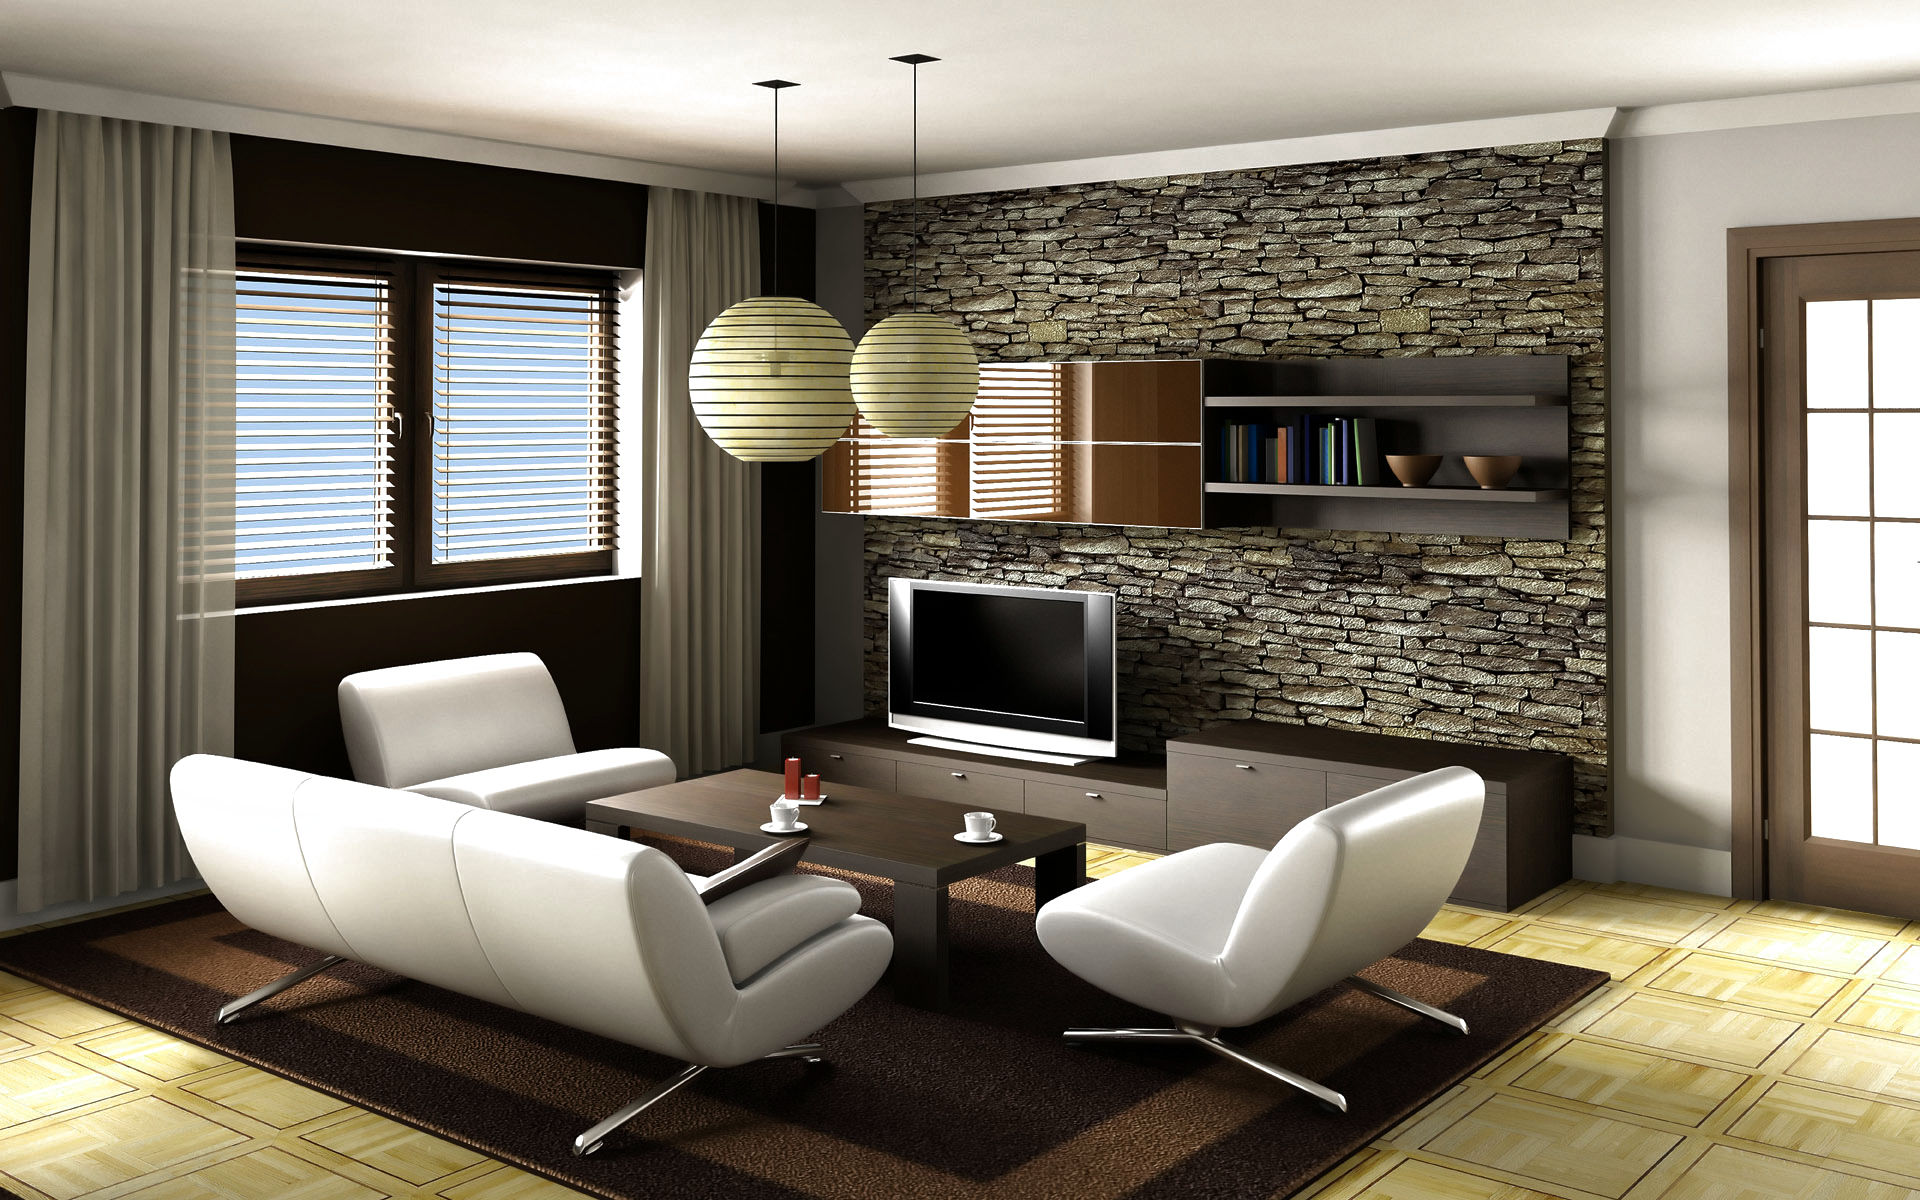 16 modern living room furniture ideas & design - hgnv